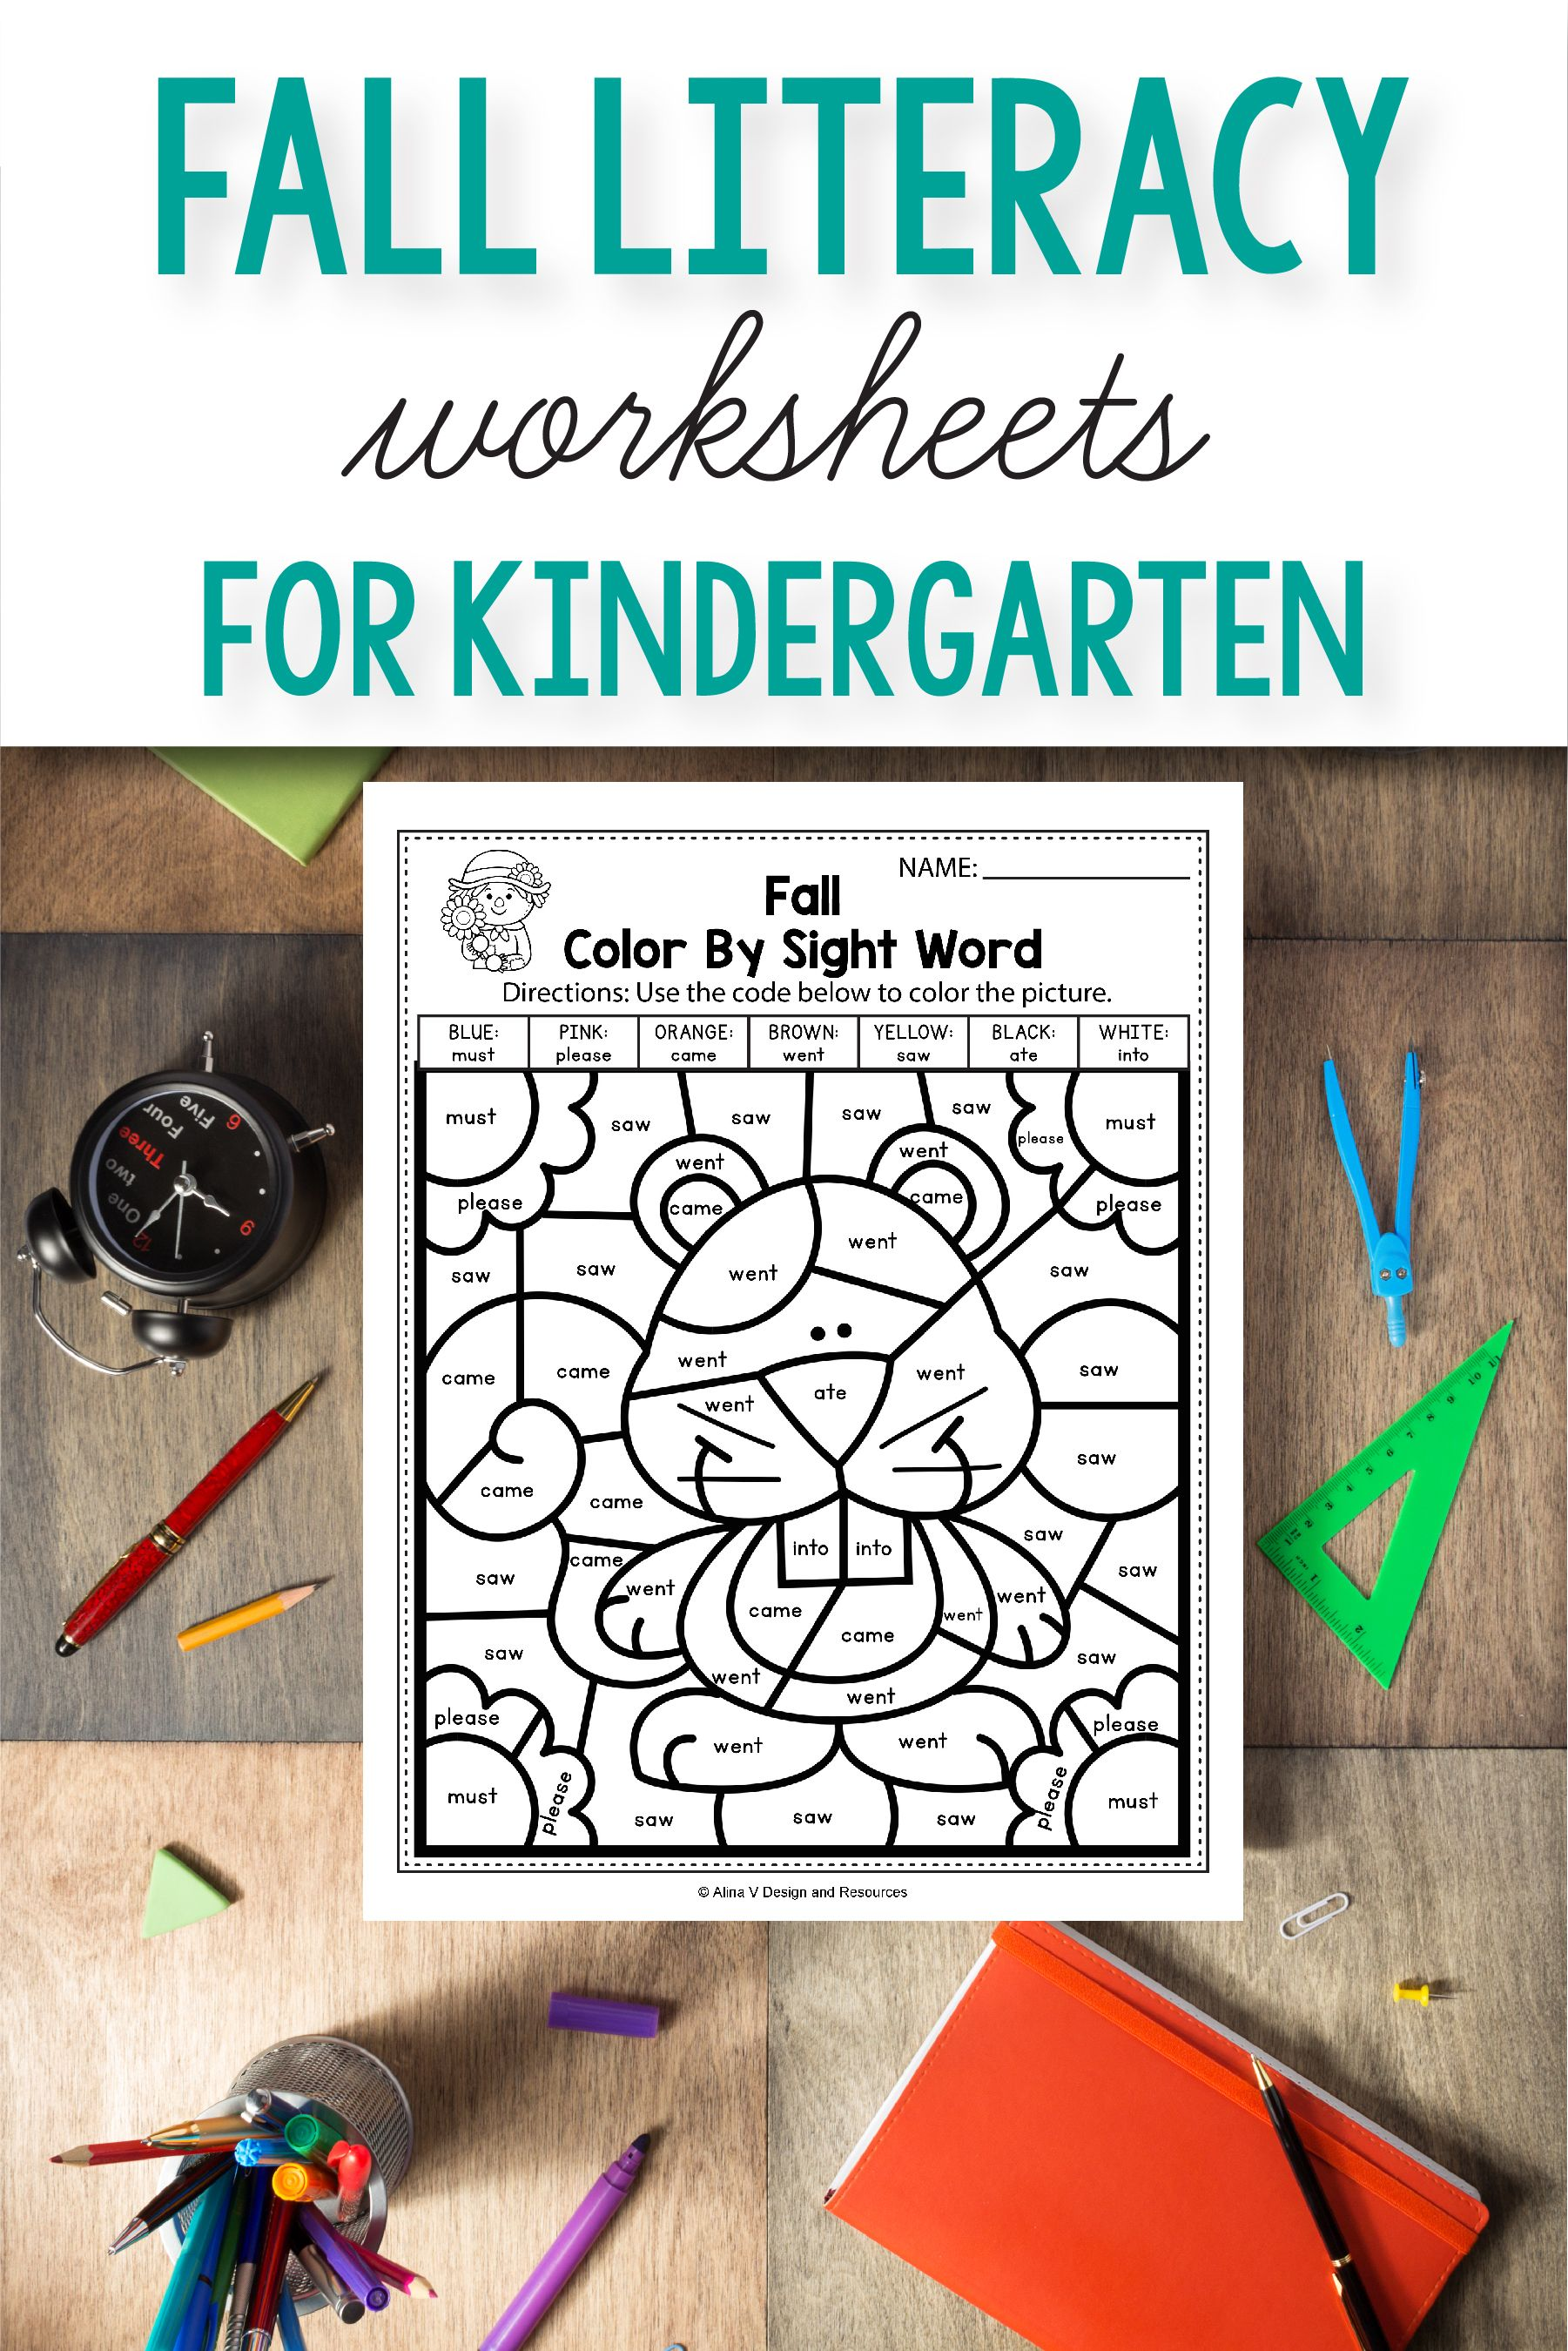 Fall Literacy Activities For Kindergarten 1st Grade And Preschool Is Fun With This Common Cores